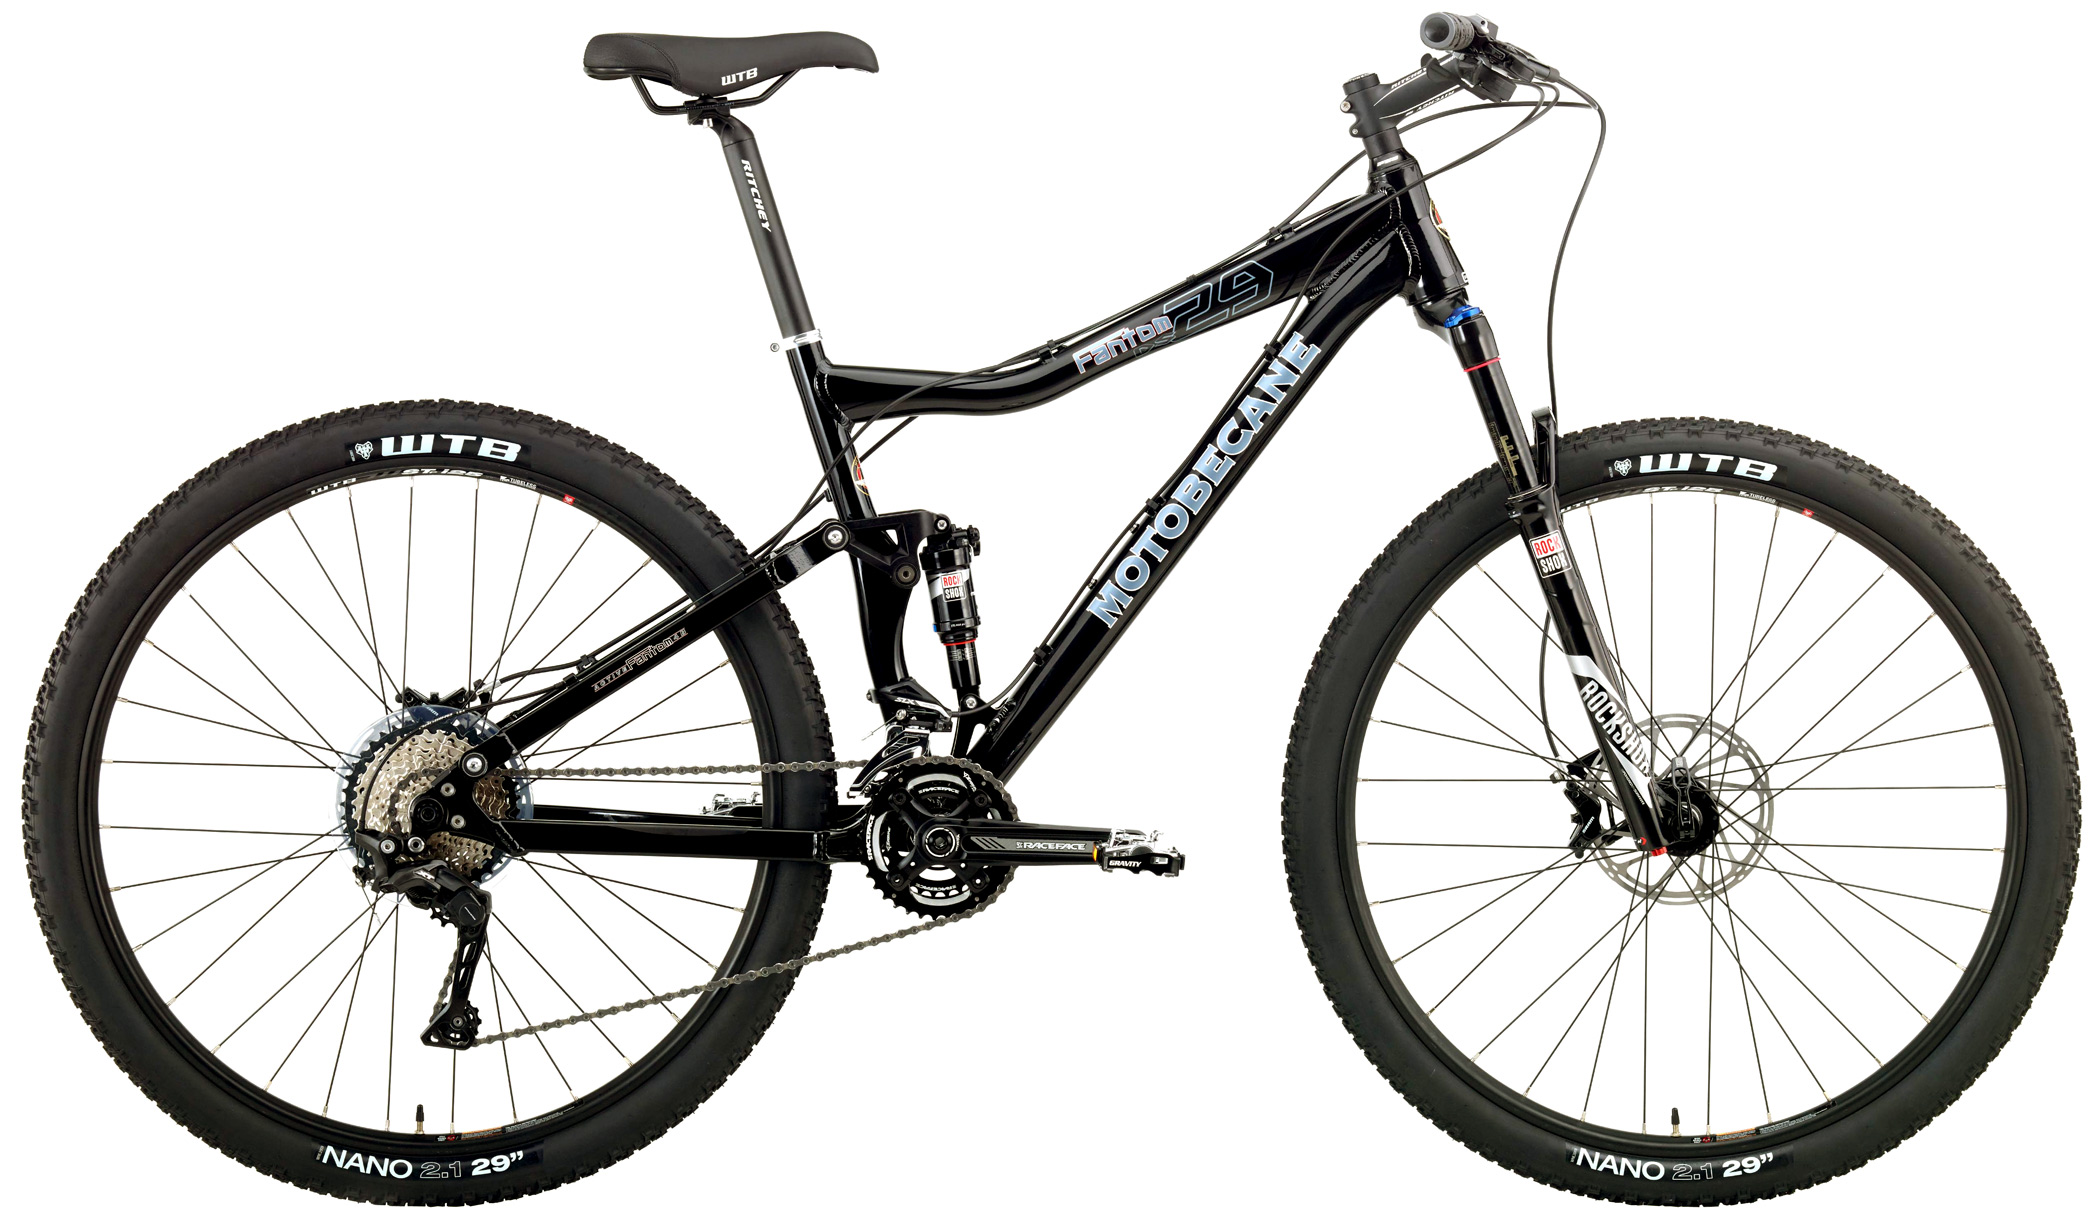 Bikes Motobecane Fantom 29 DS Pro Shimano SLX Equipped Image